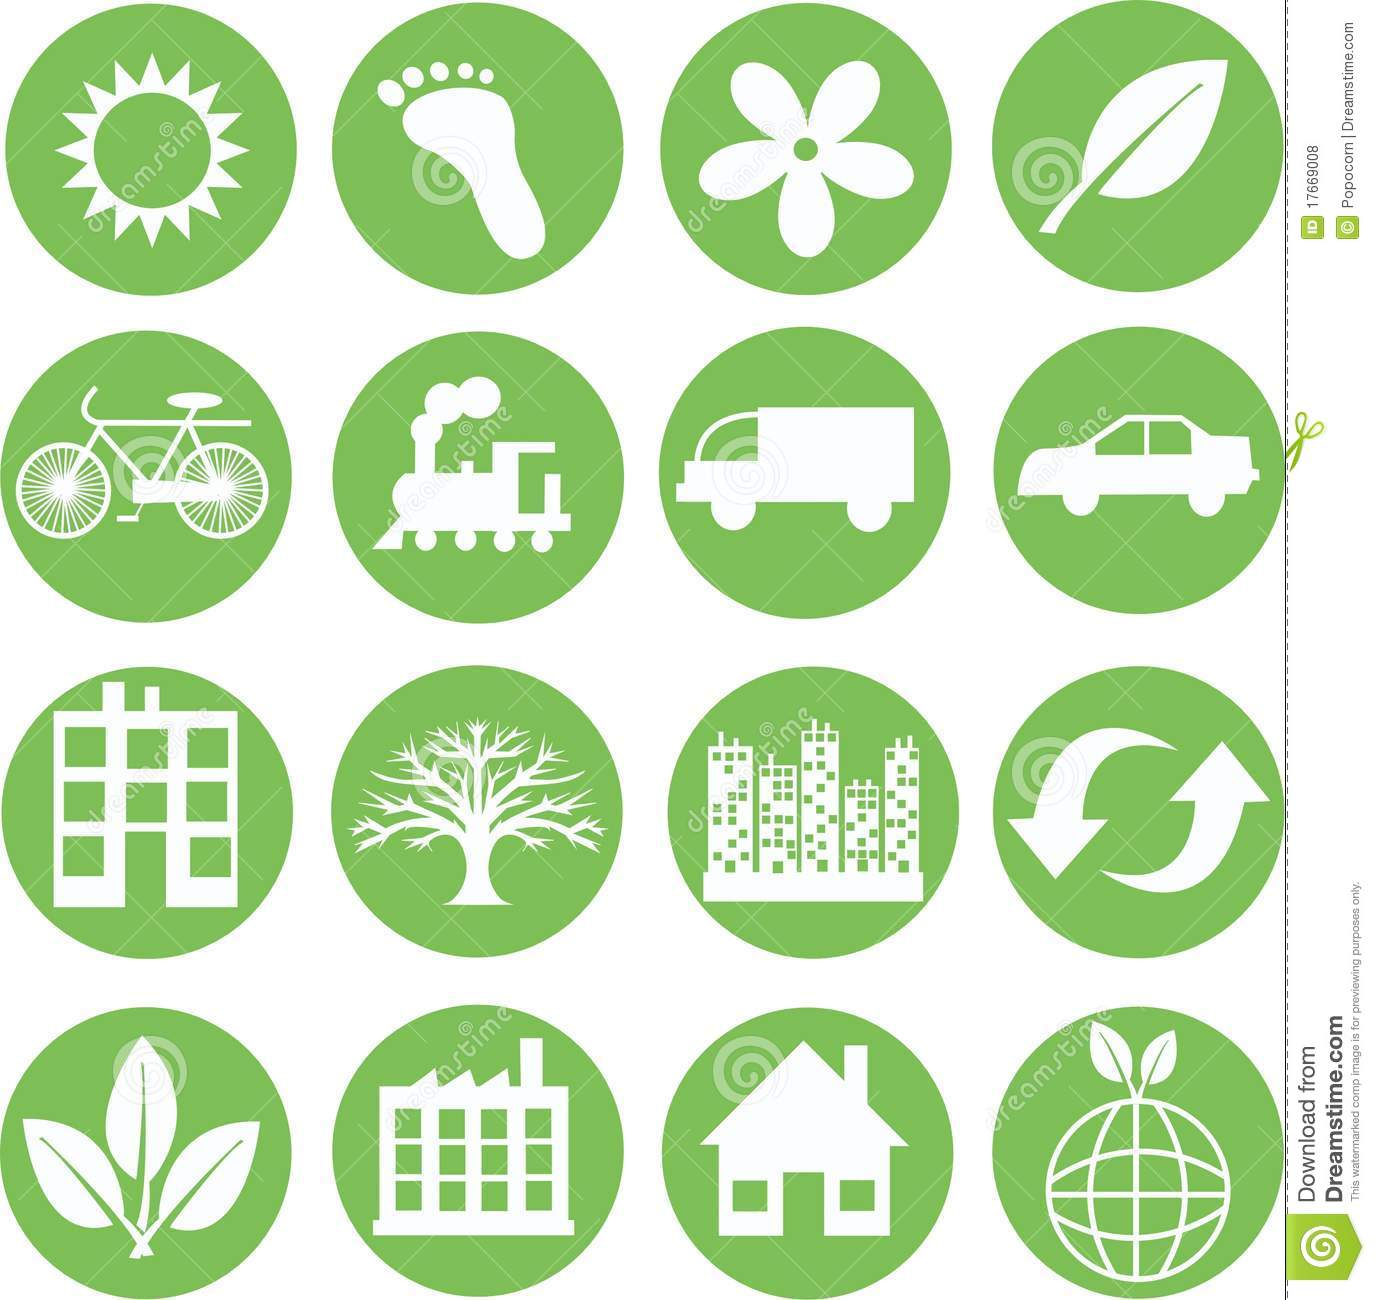 Green Ecology Icons Royalty Free Stock Photos - Image ...